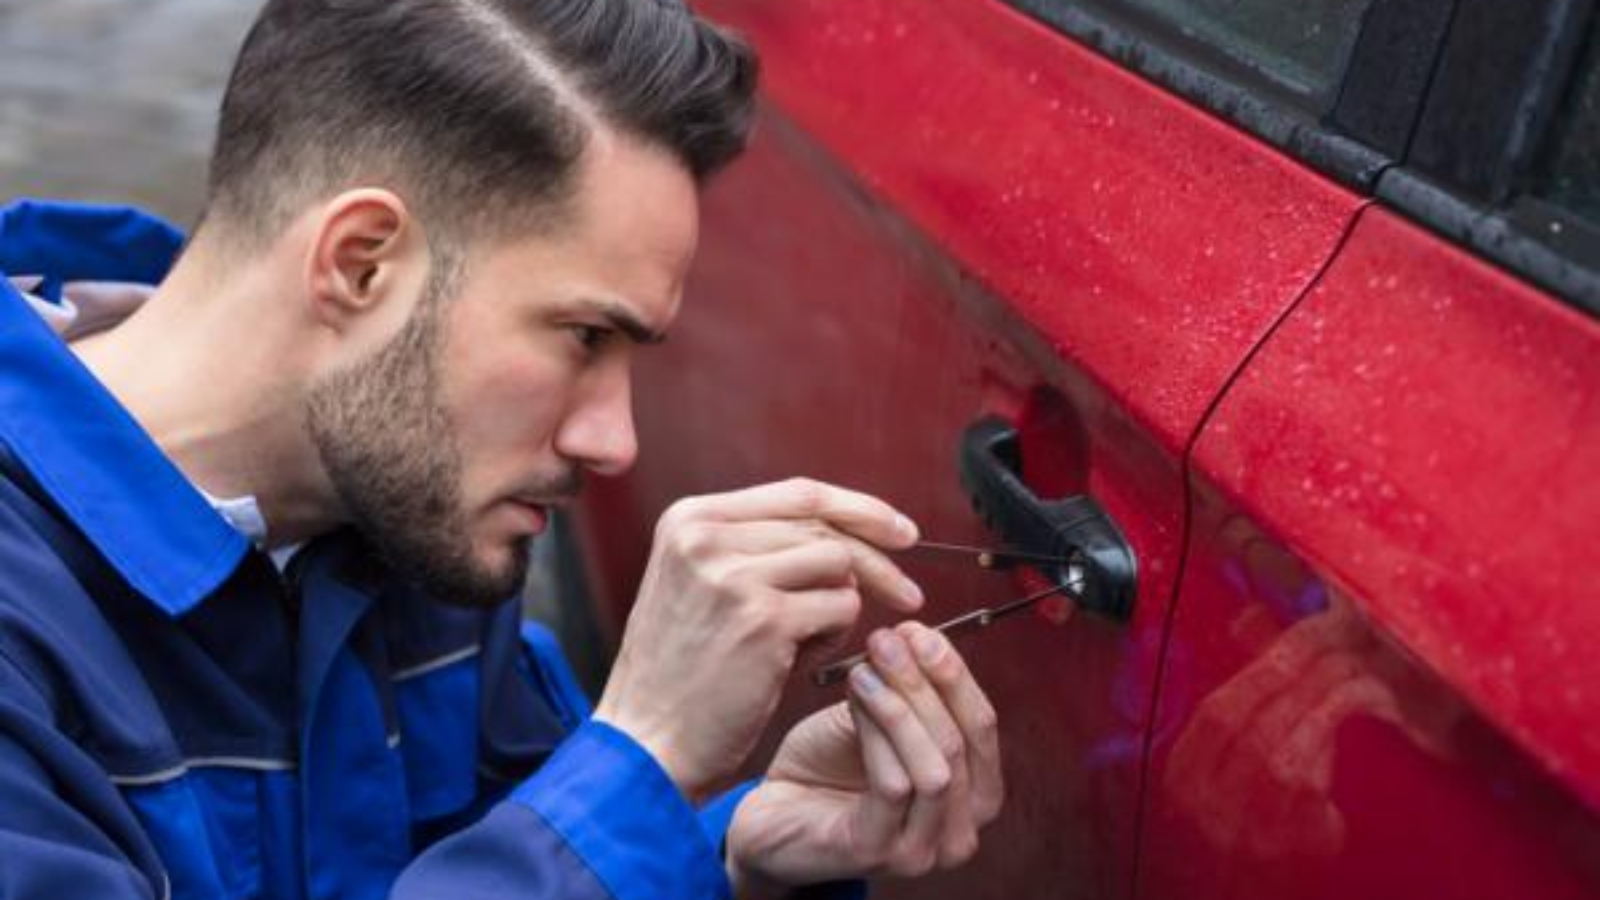 How to open your car without keys